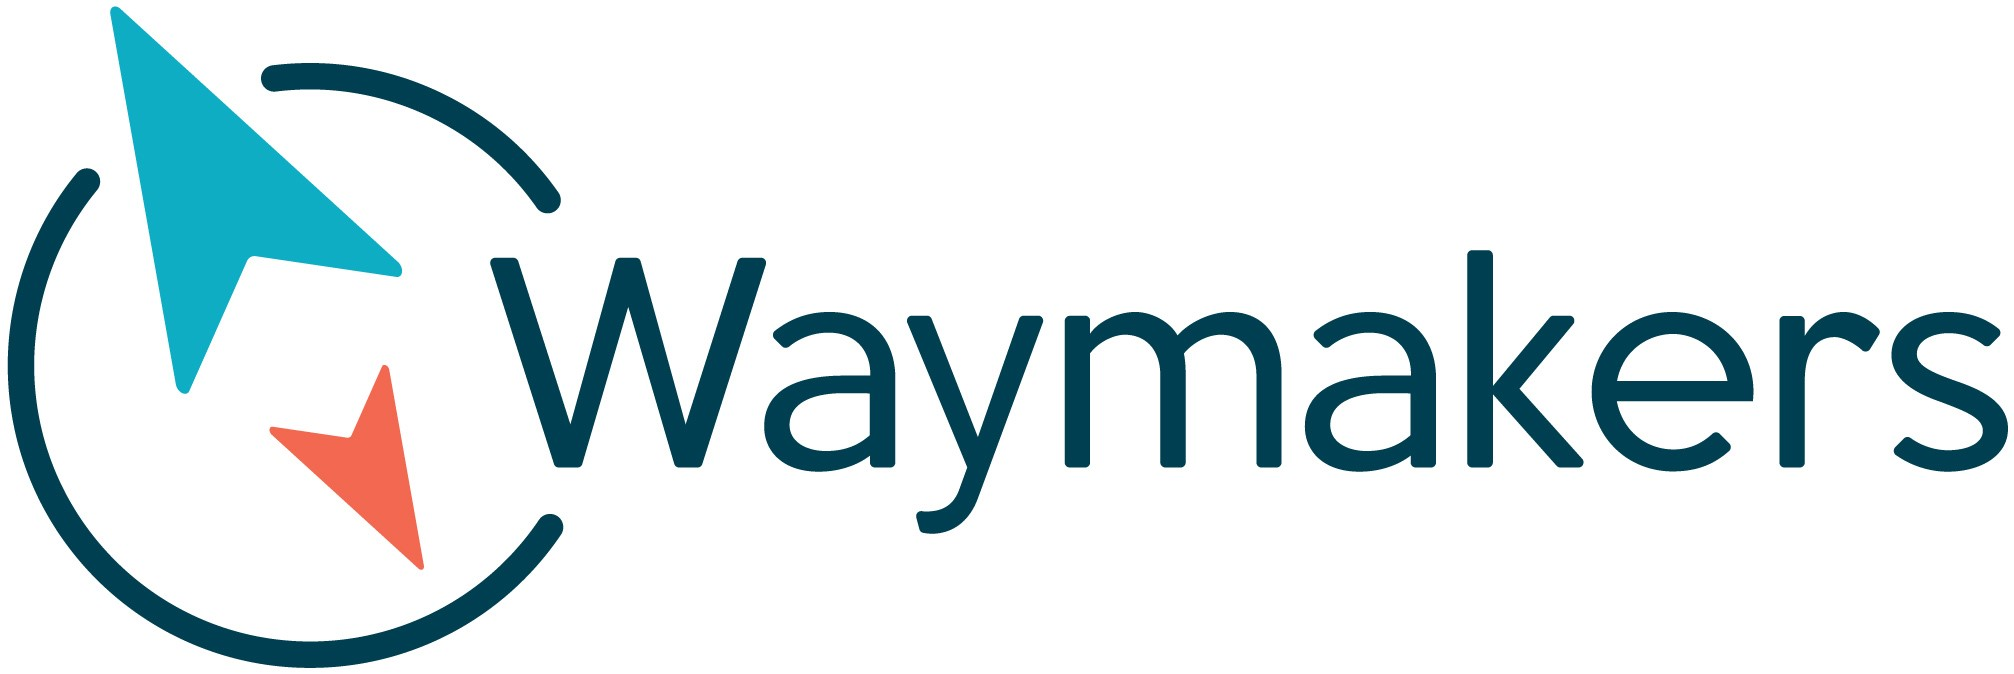 Waymakers_logo.jpg